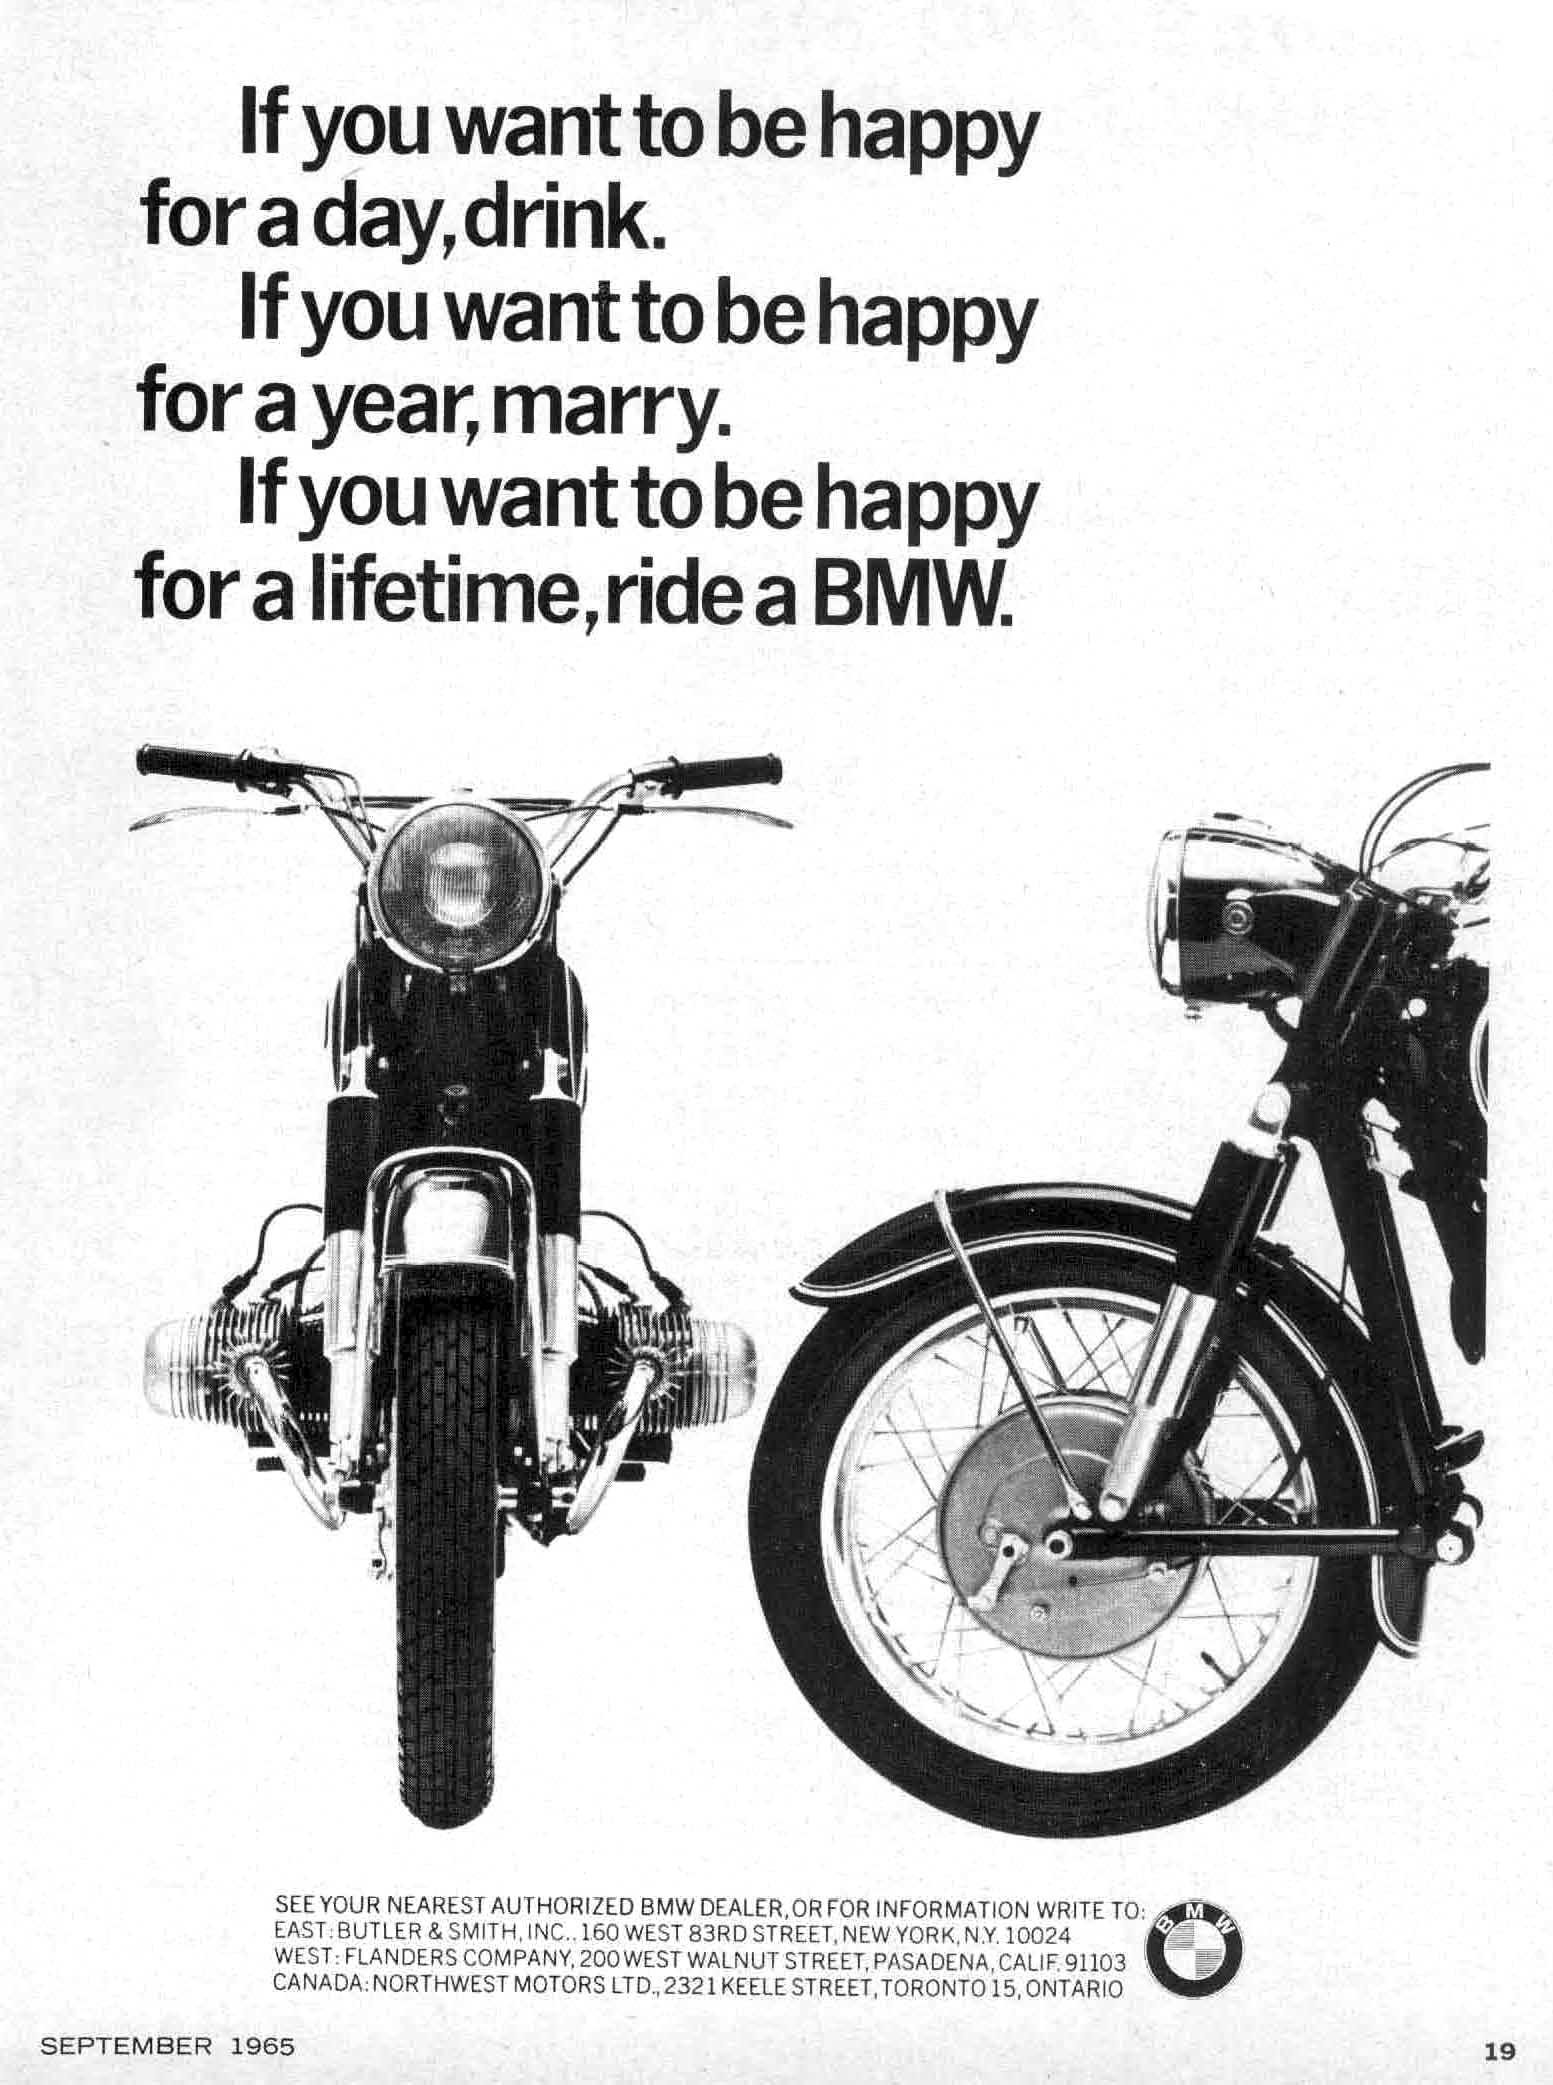 dean of bmw motorcycle web sites!